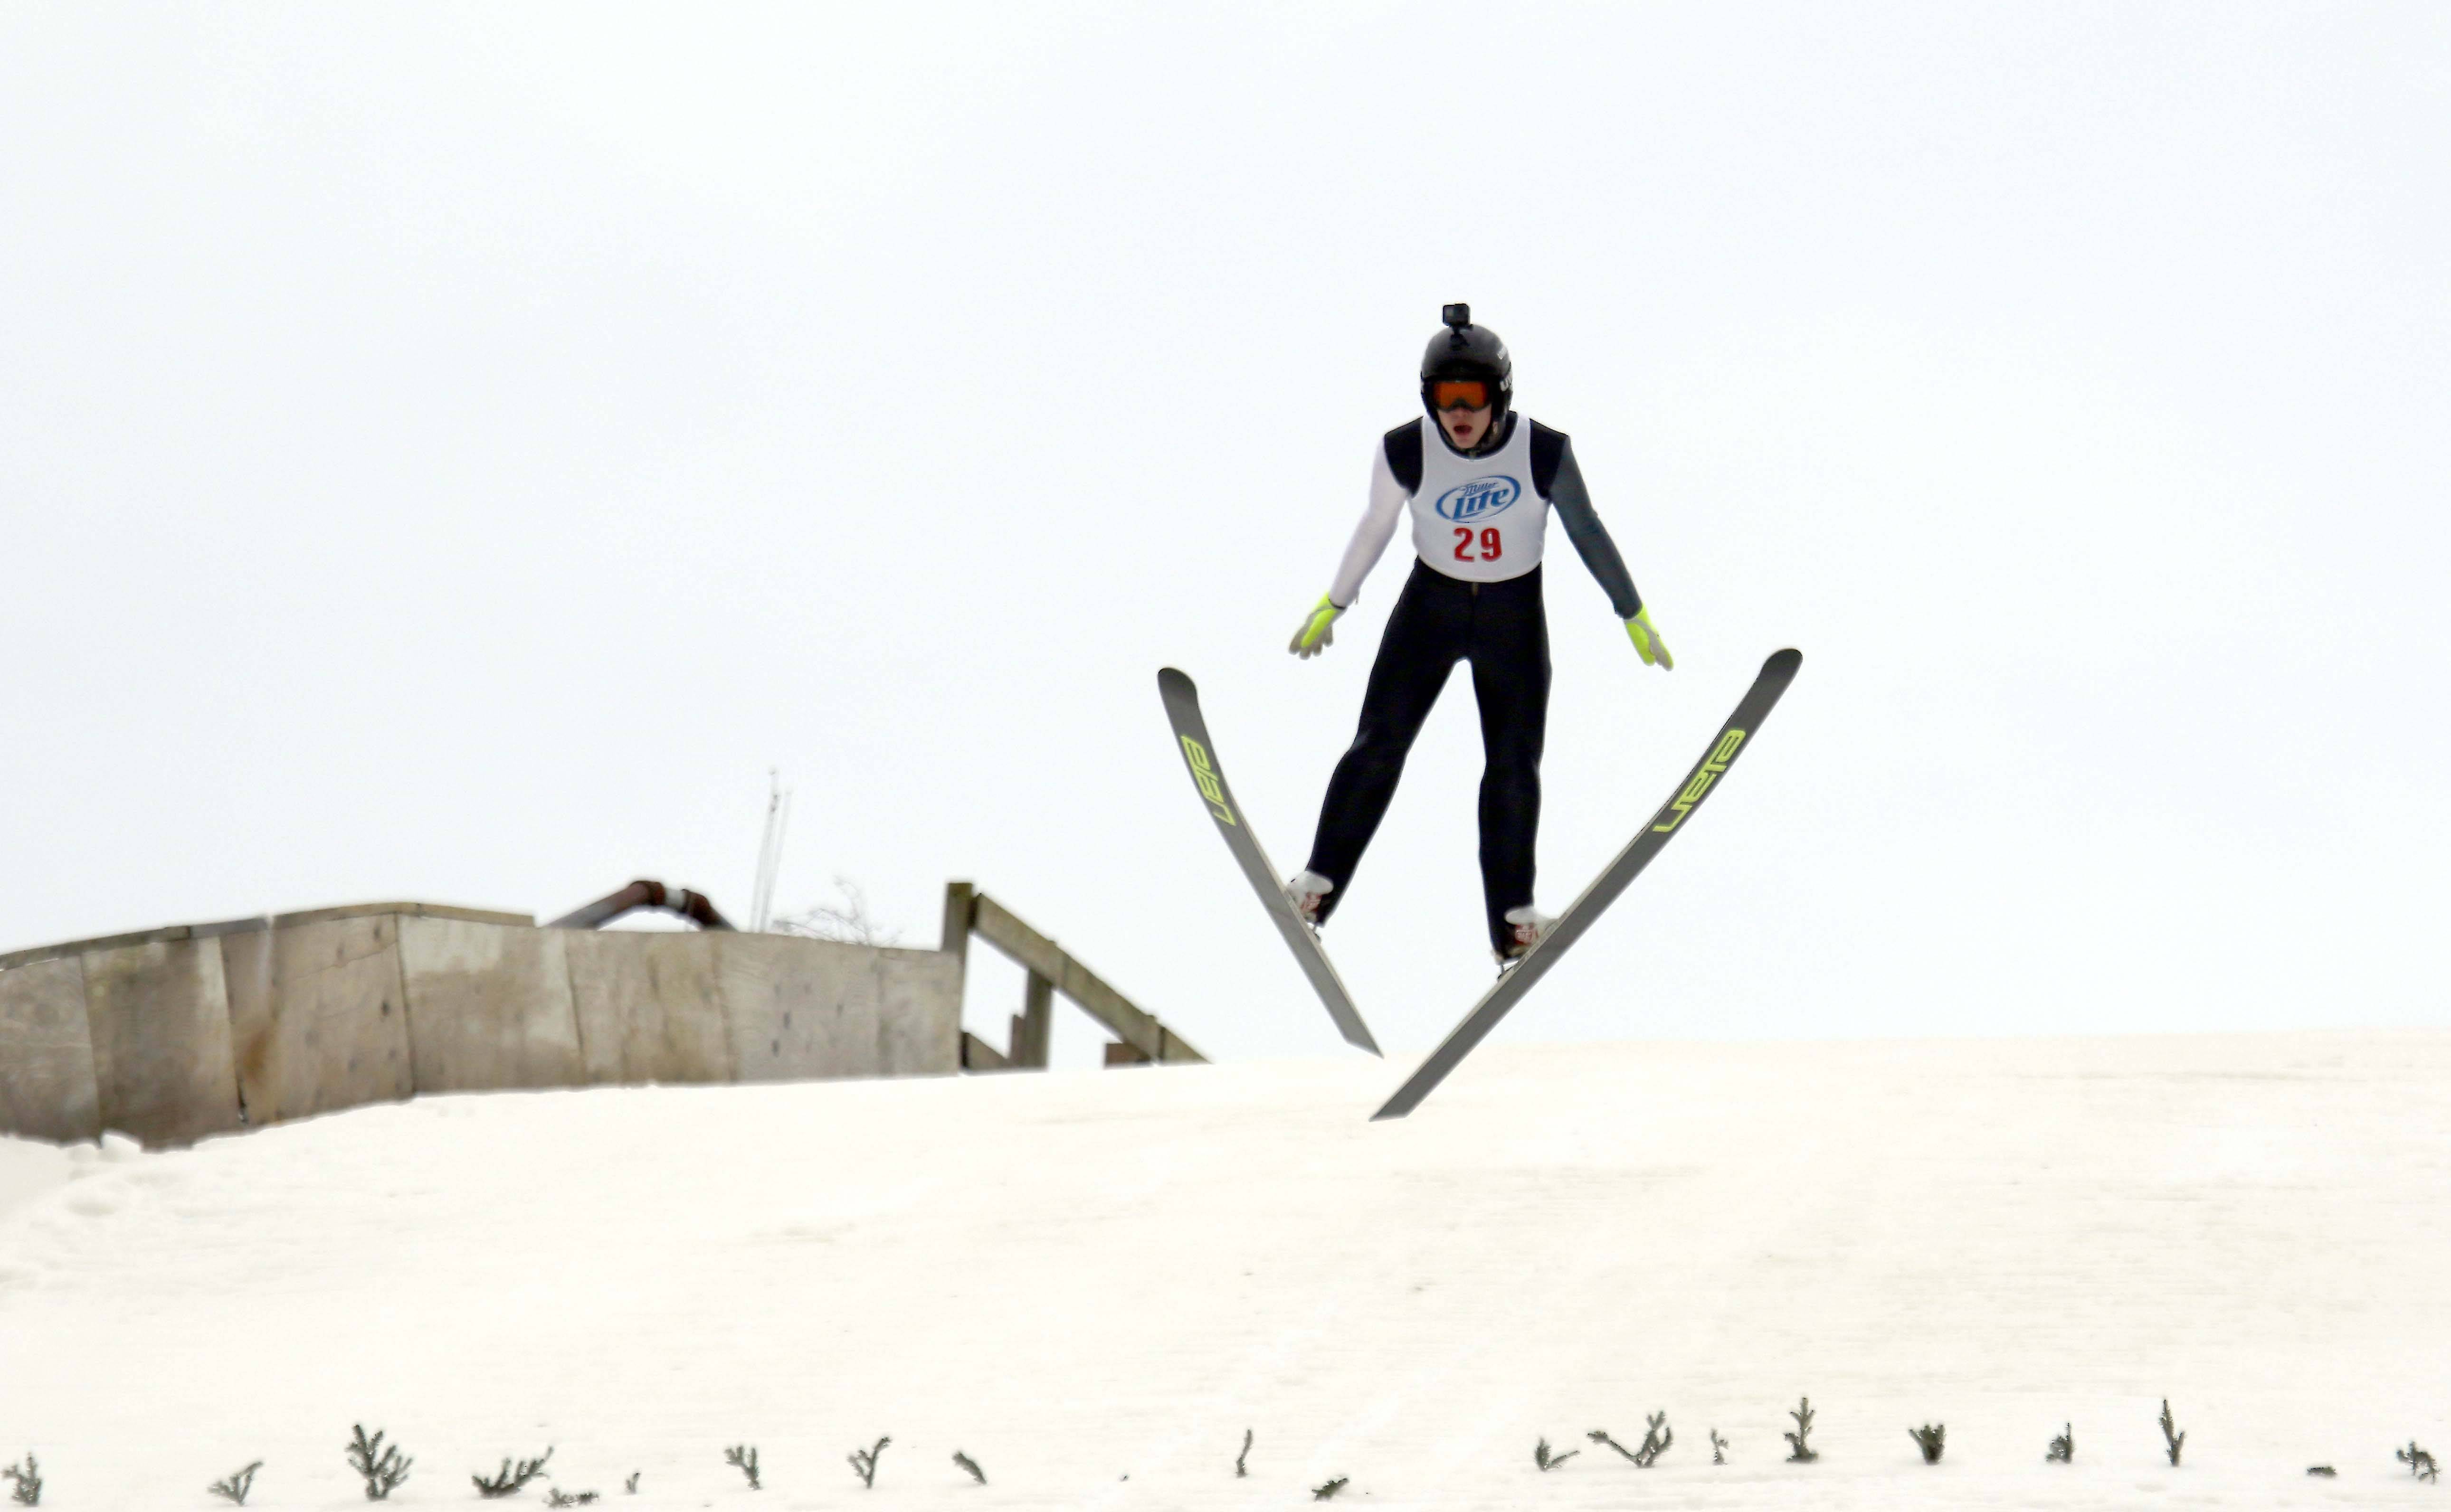 Brian Hill/bhill@dailyherald.comHunter Gibson, 15, of Fox River Grove and of the Norge Ski Club launches himself from the big hill Saturday during the 112th International Winter Tournament at the Norge Ski Club in Fox River Grove.